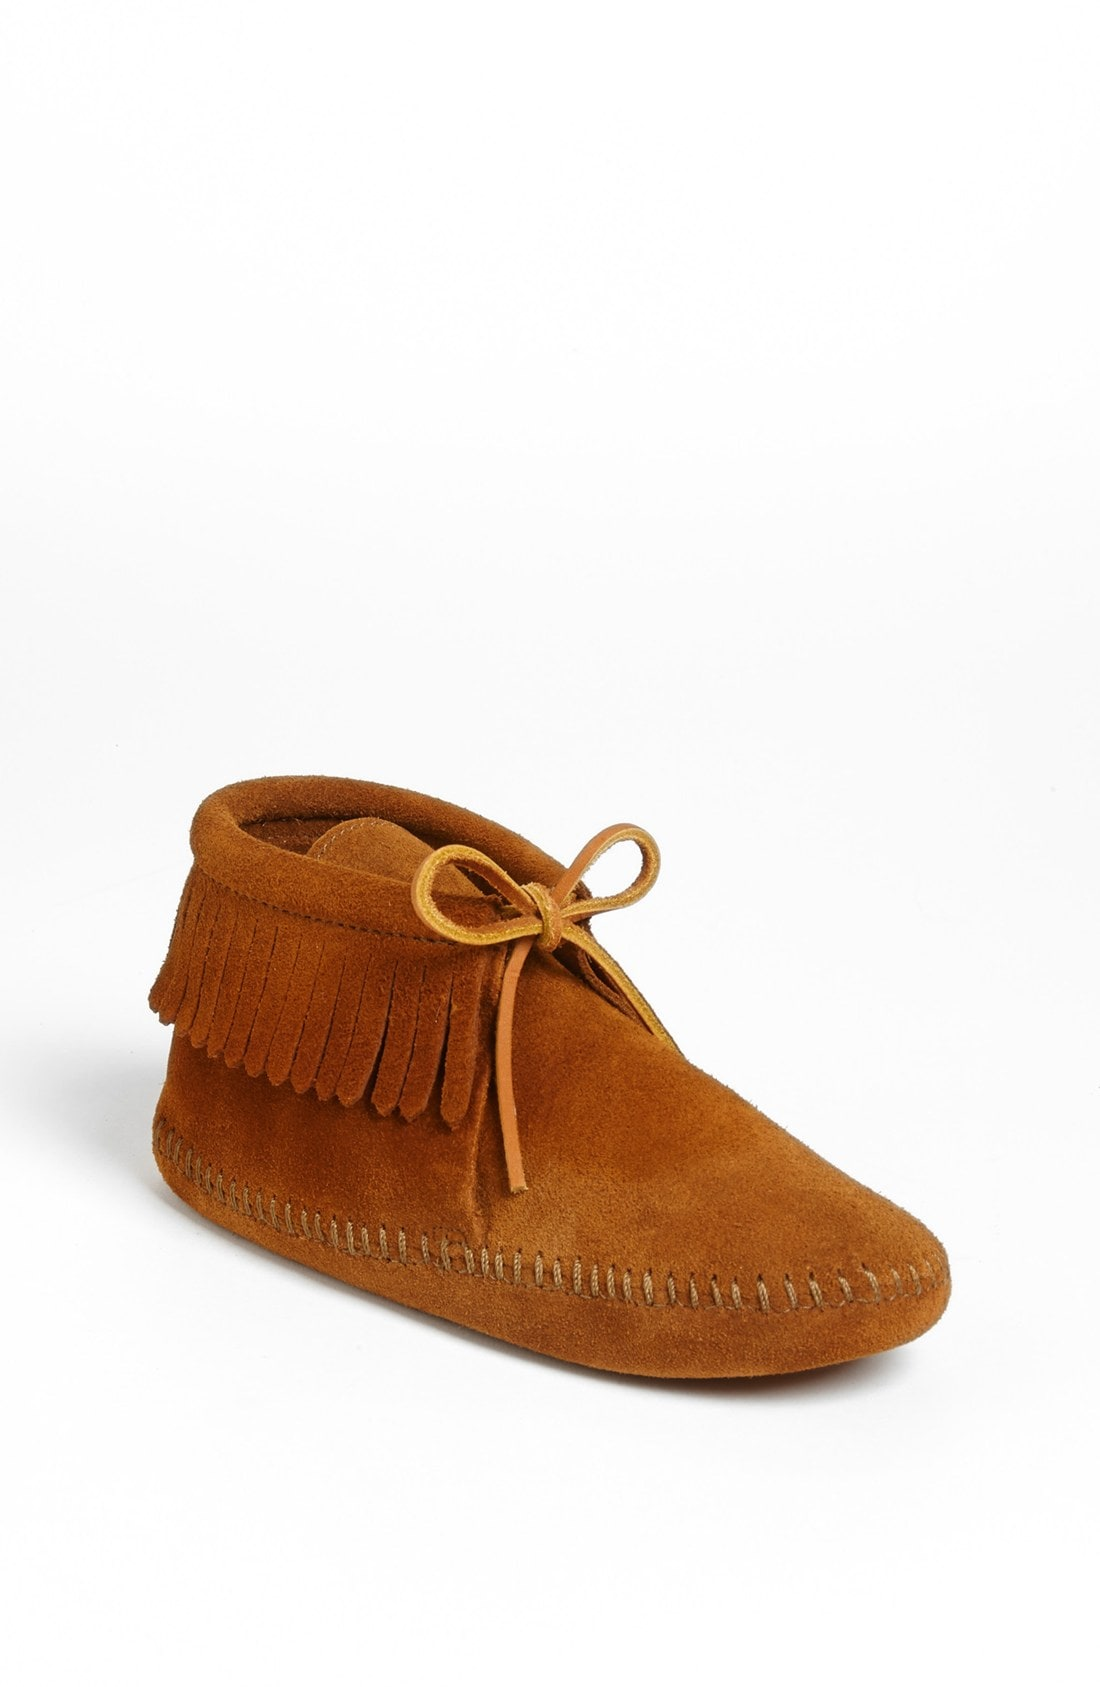 moccasin boots | Nordstrom